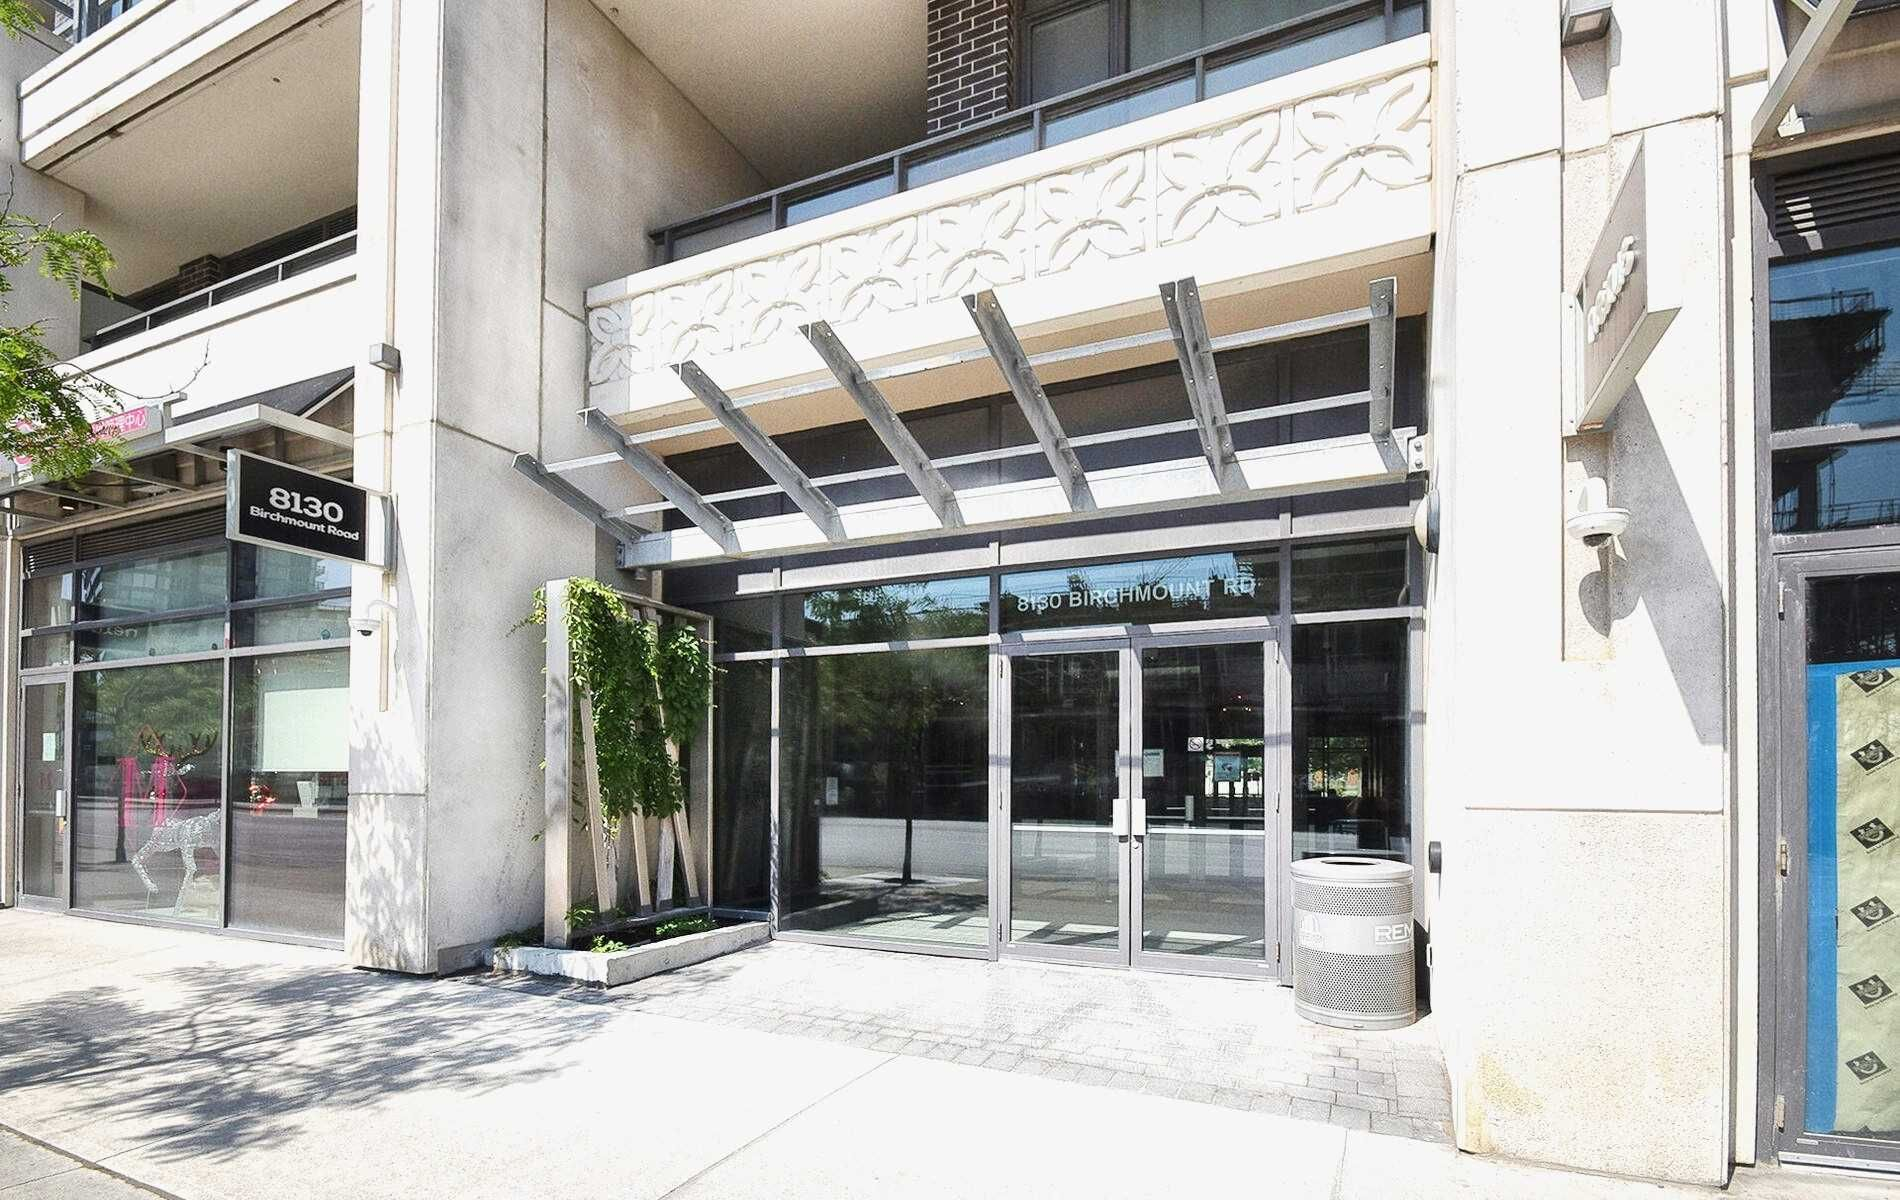 8130 Birchmount Rd, unit 1008 for sale in Toronto - image #2